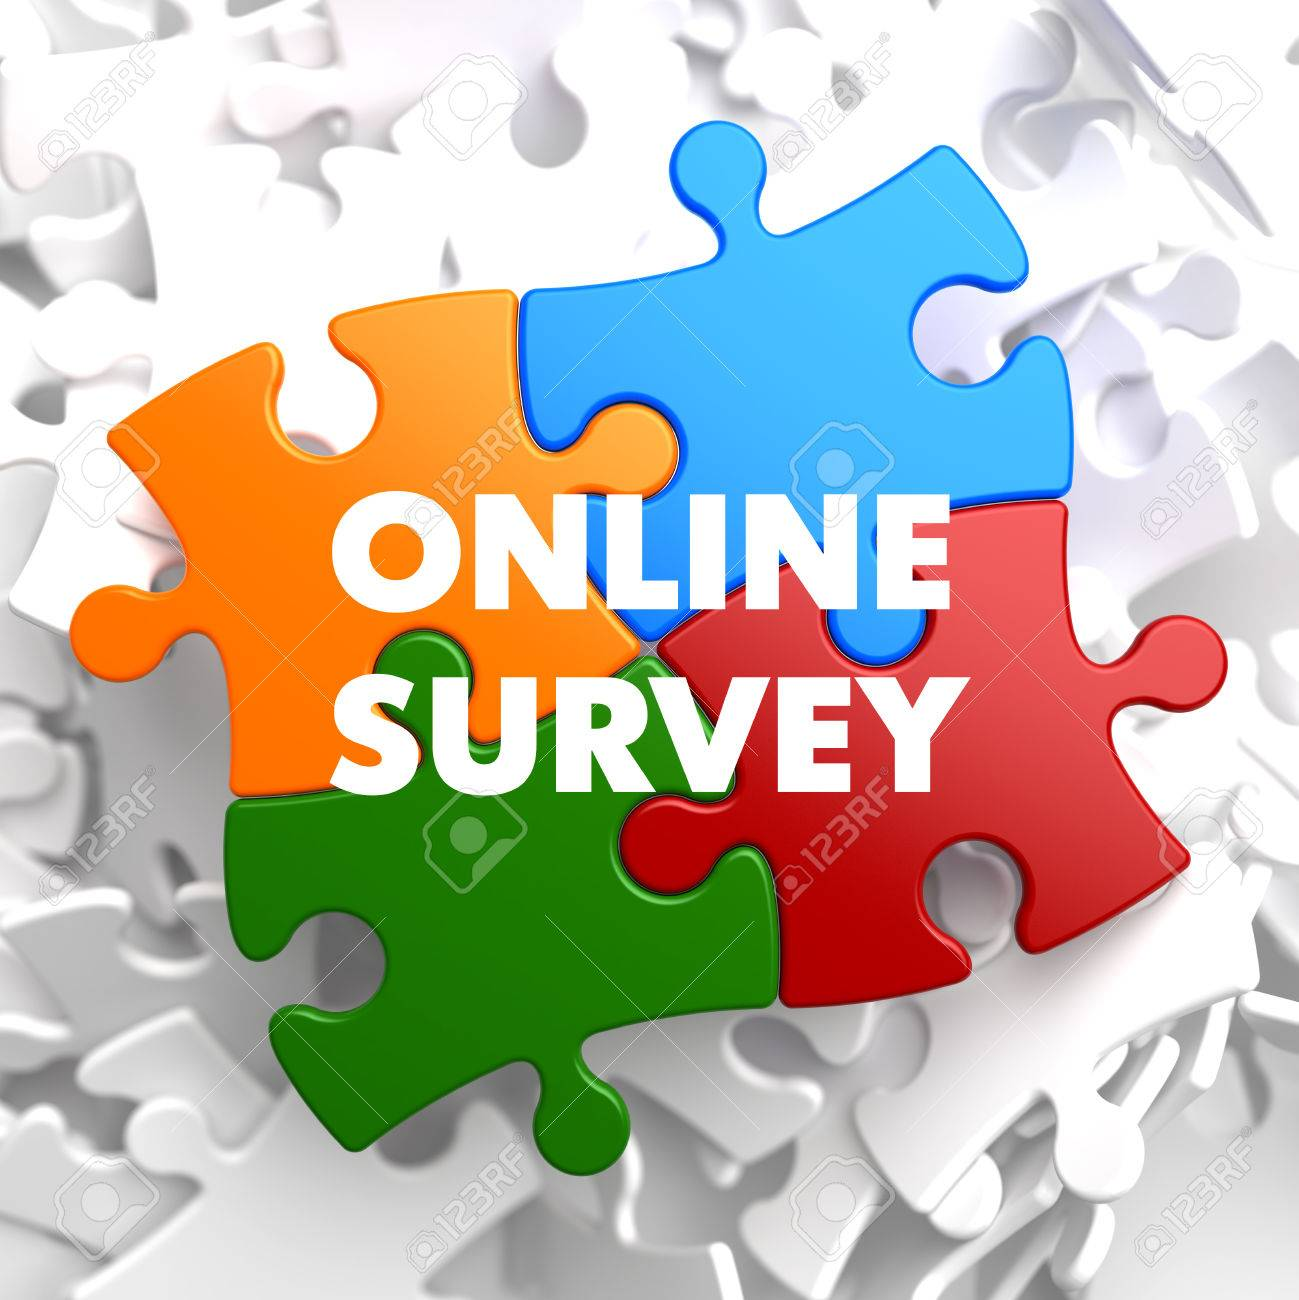 online survey on multicolor puzzle on white background stock